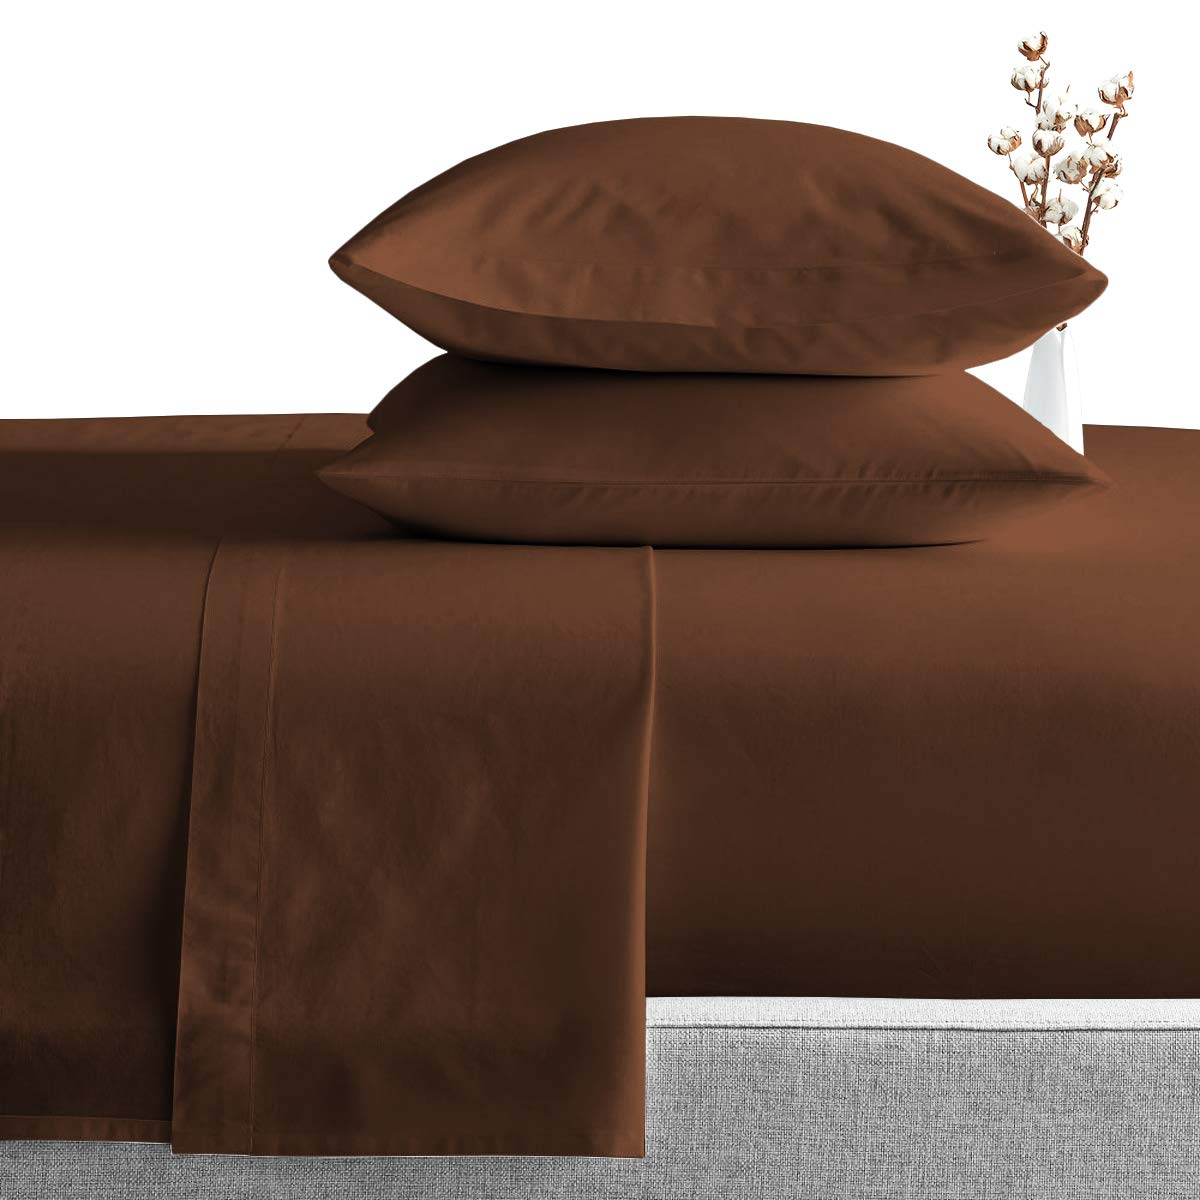 RV King Sheets Luxury Soft 100% Egyptian Cotton - Sheet Set for RV King 72x80 Mattress Chocolate Solid 600 Thread Count Deep Pocket